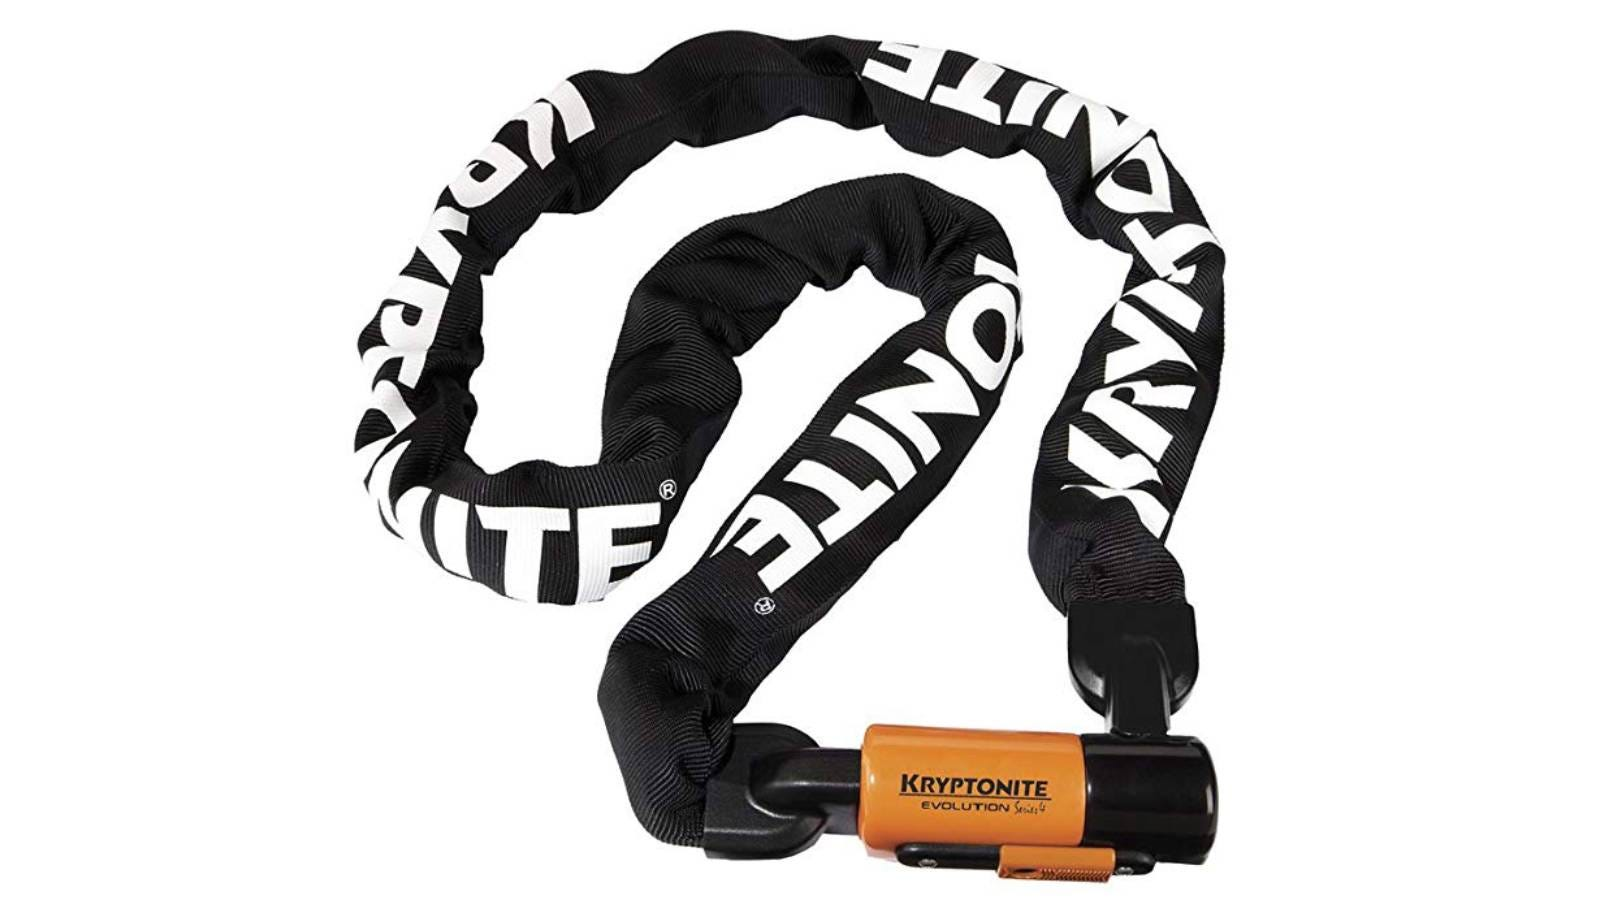 The Kryptonite Evolution Series-4 1016 Integrated Chain Bicycle Lock.